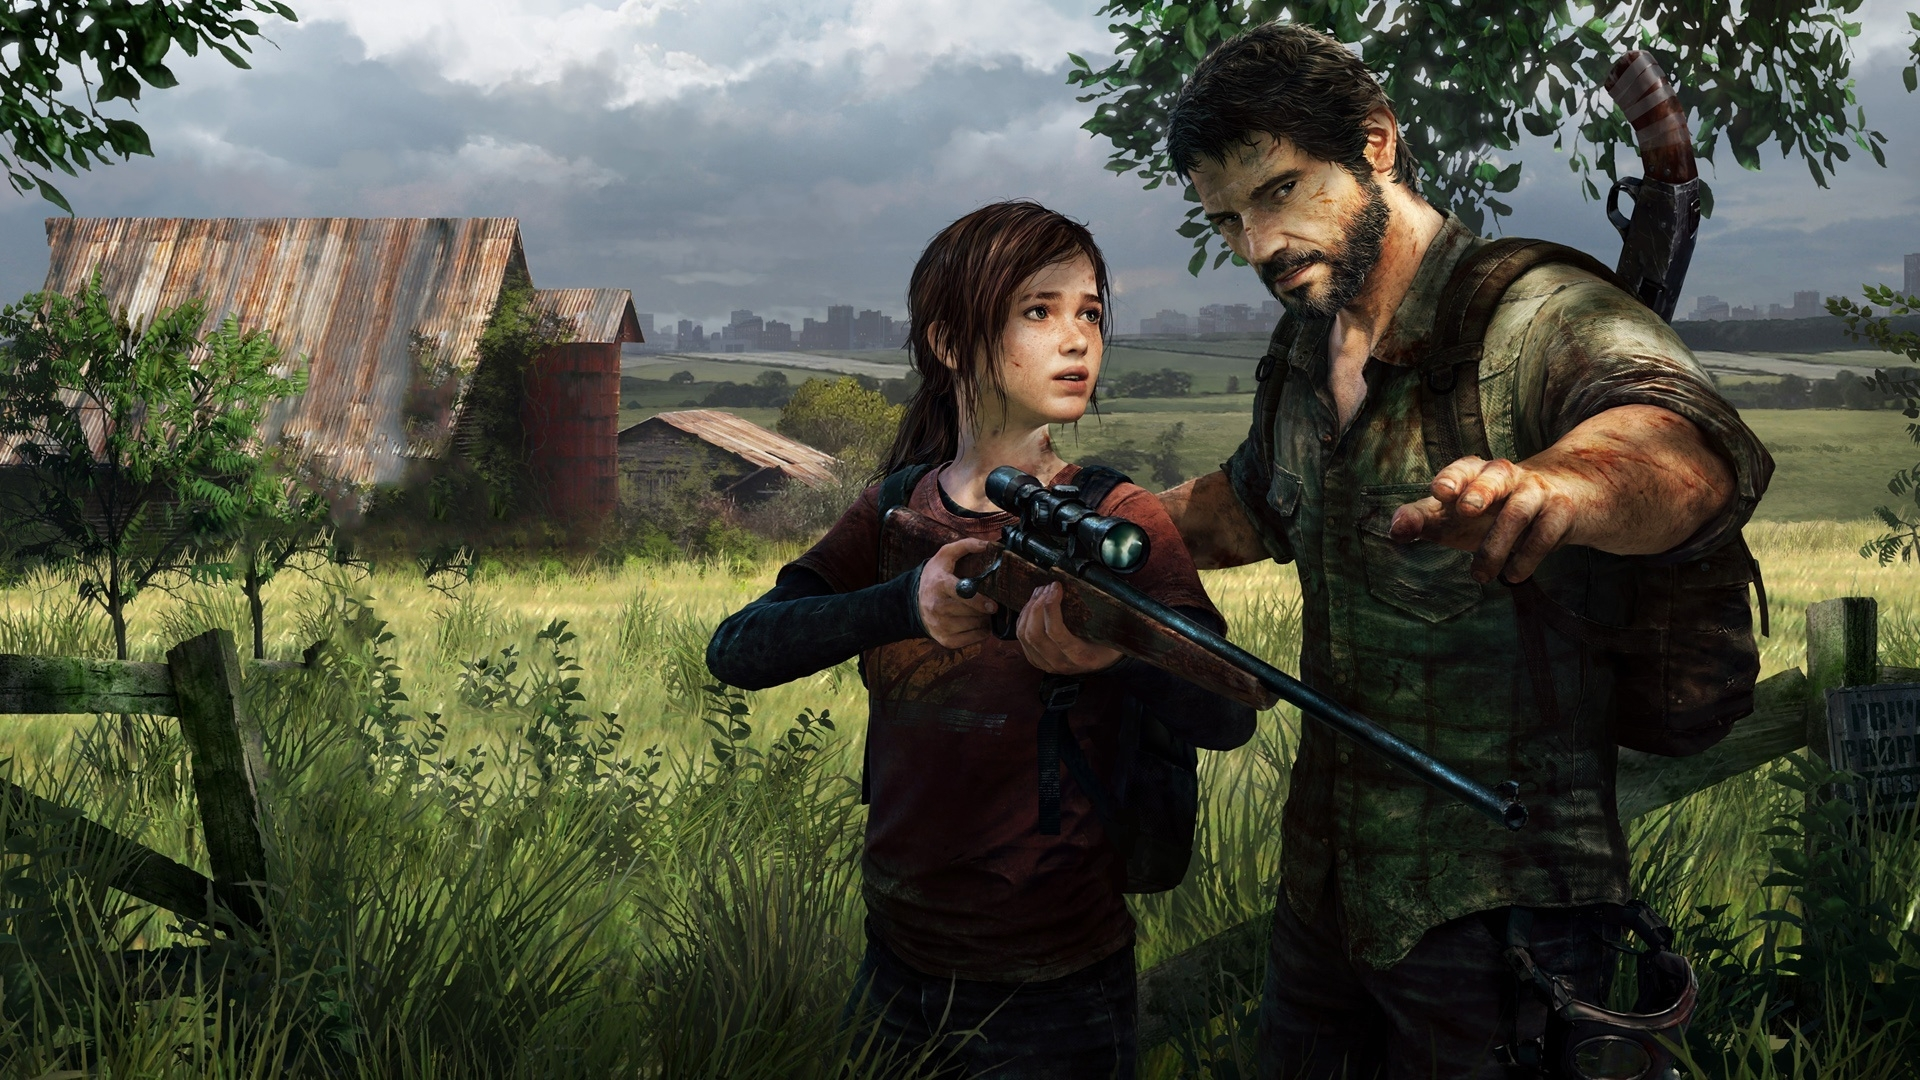 10 New Last Of Us Wallpaper Full Hd 1080p For Pc - Last Of Us , HD Wallpaper & Backgrounds